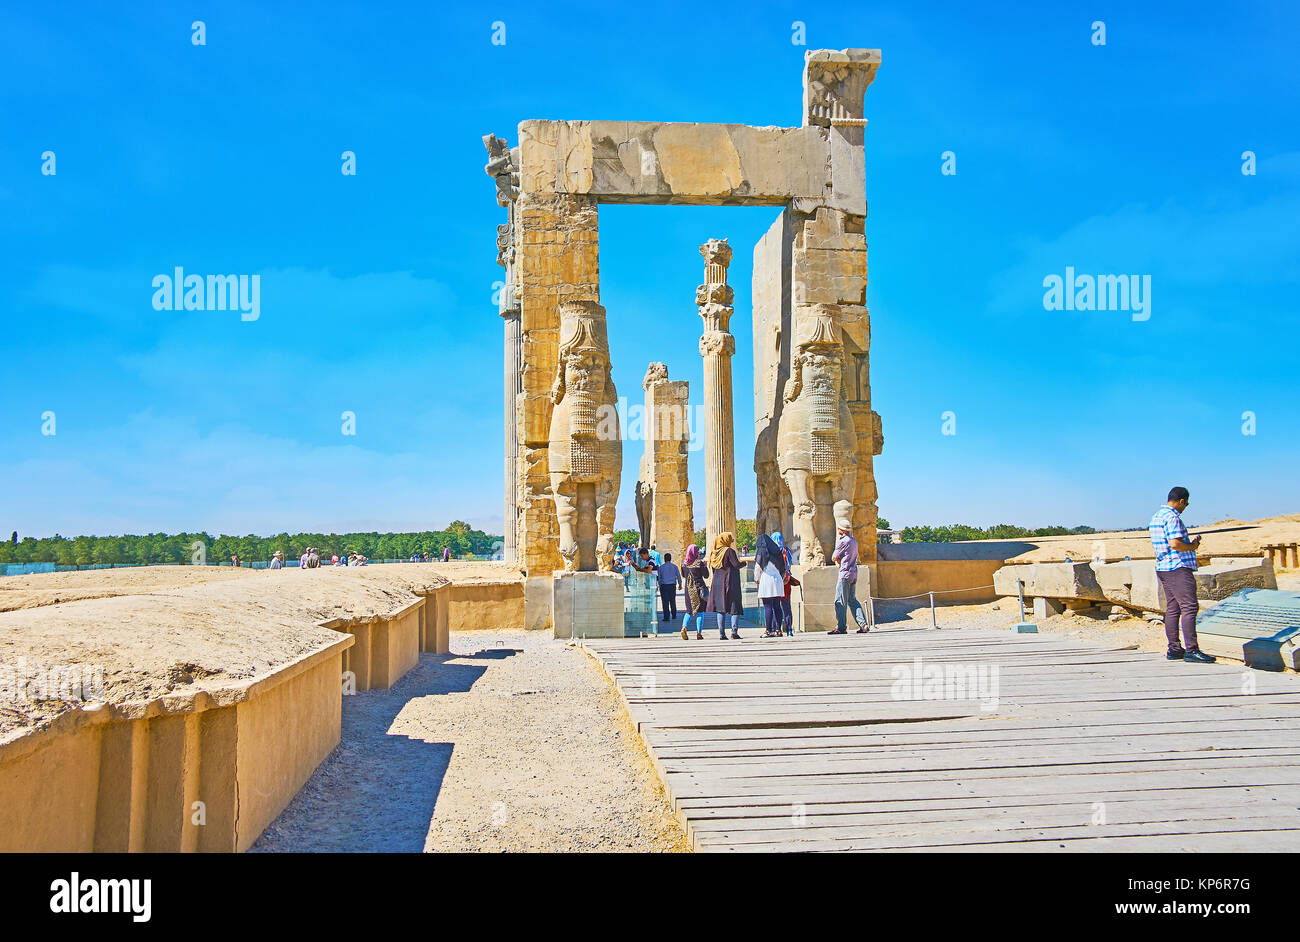 PERSEPOLIS, IRAN - OCTOBER 13, 2017: The way to the eastern entrance of All Nations Gates (Xerxes Gate), one of Stock Photo